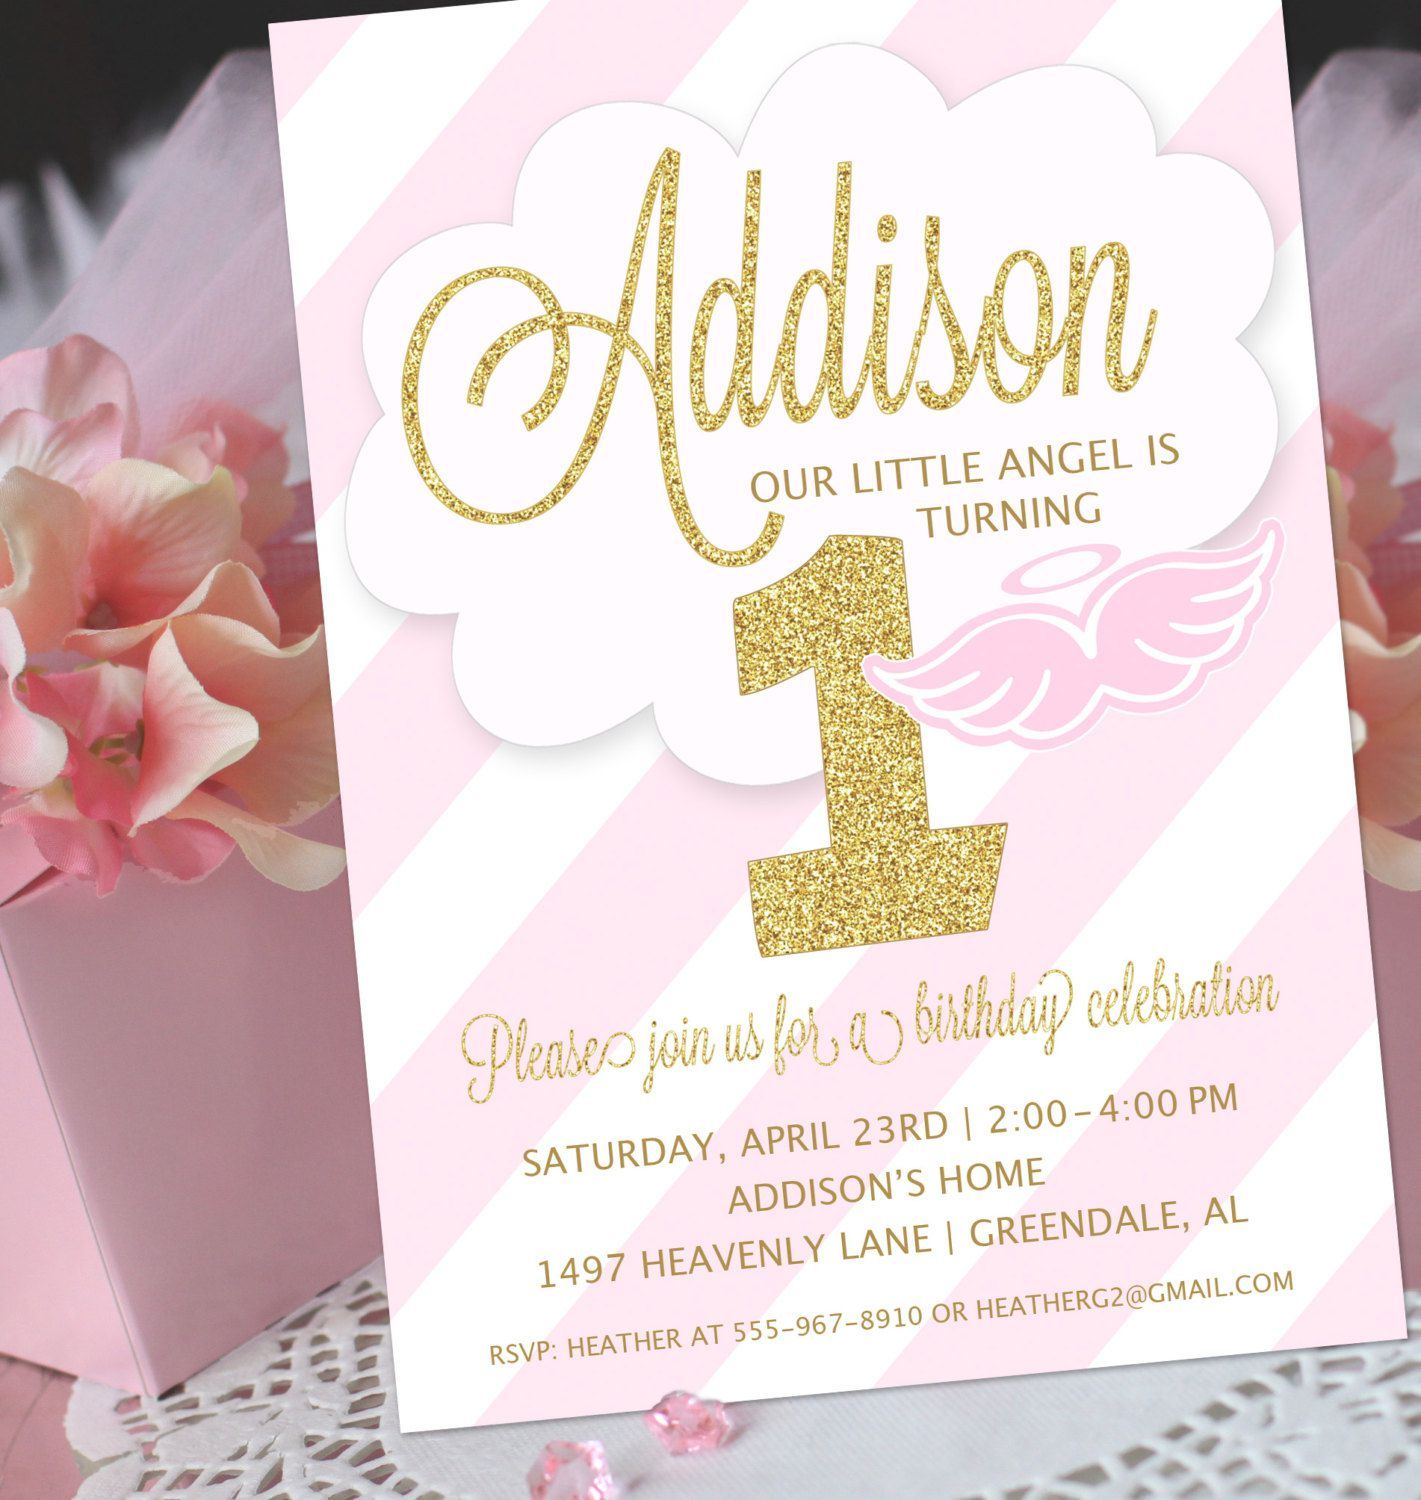 30f7069208e0a645fc92cb10c8de0d25 joint 1st birthday and christening invitations baptism,1st Birthday Christening Invitations